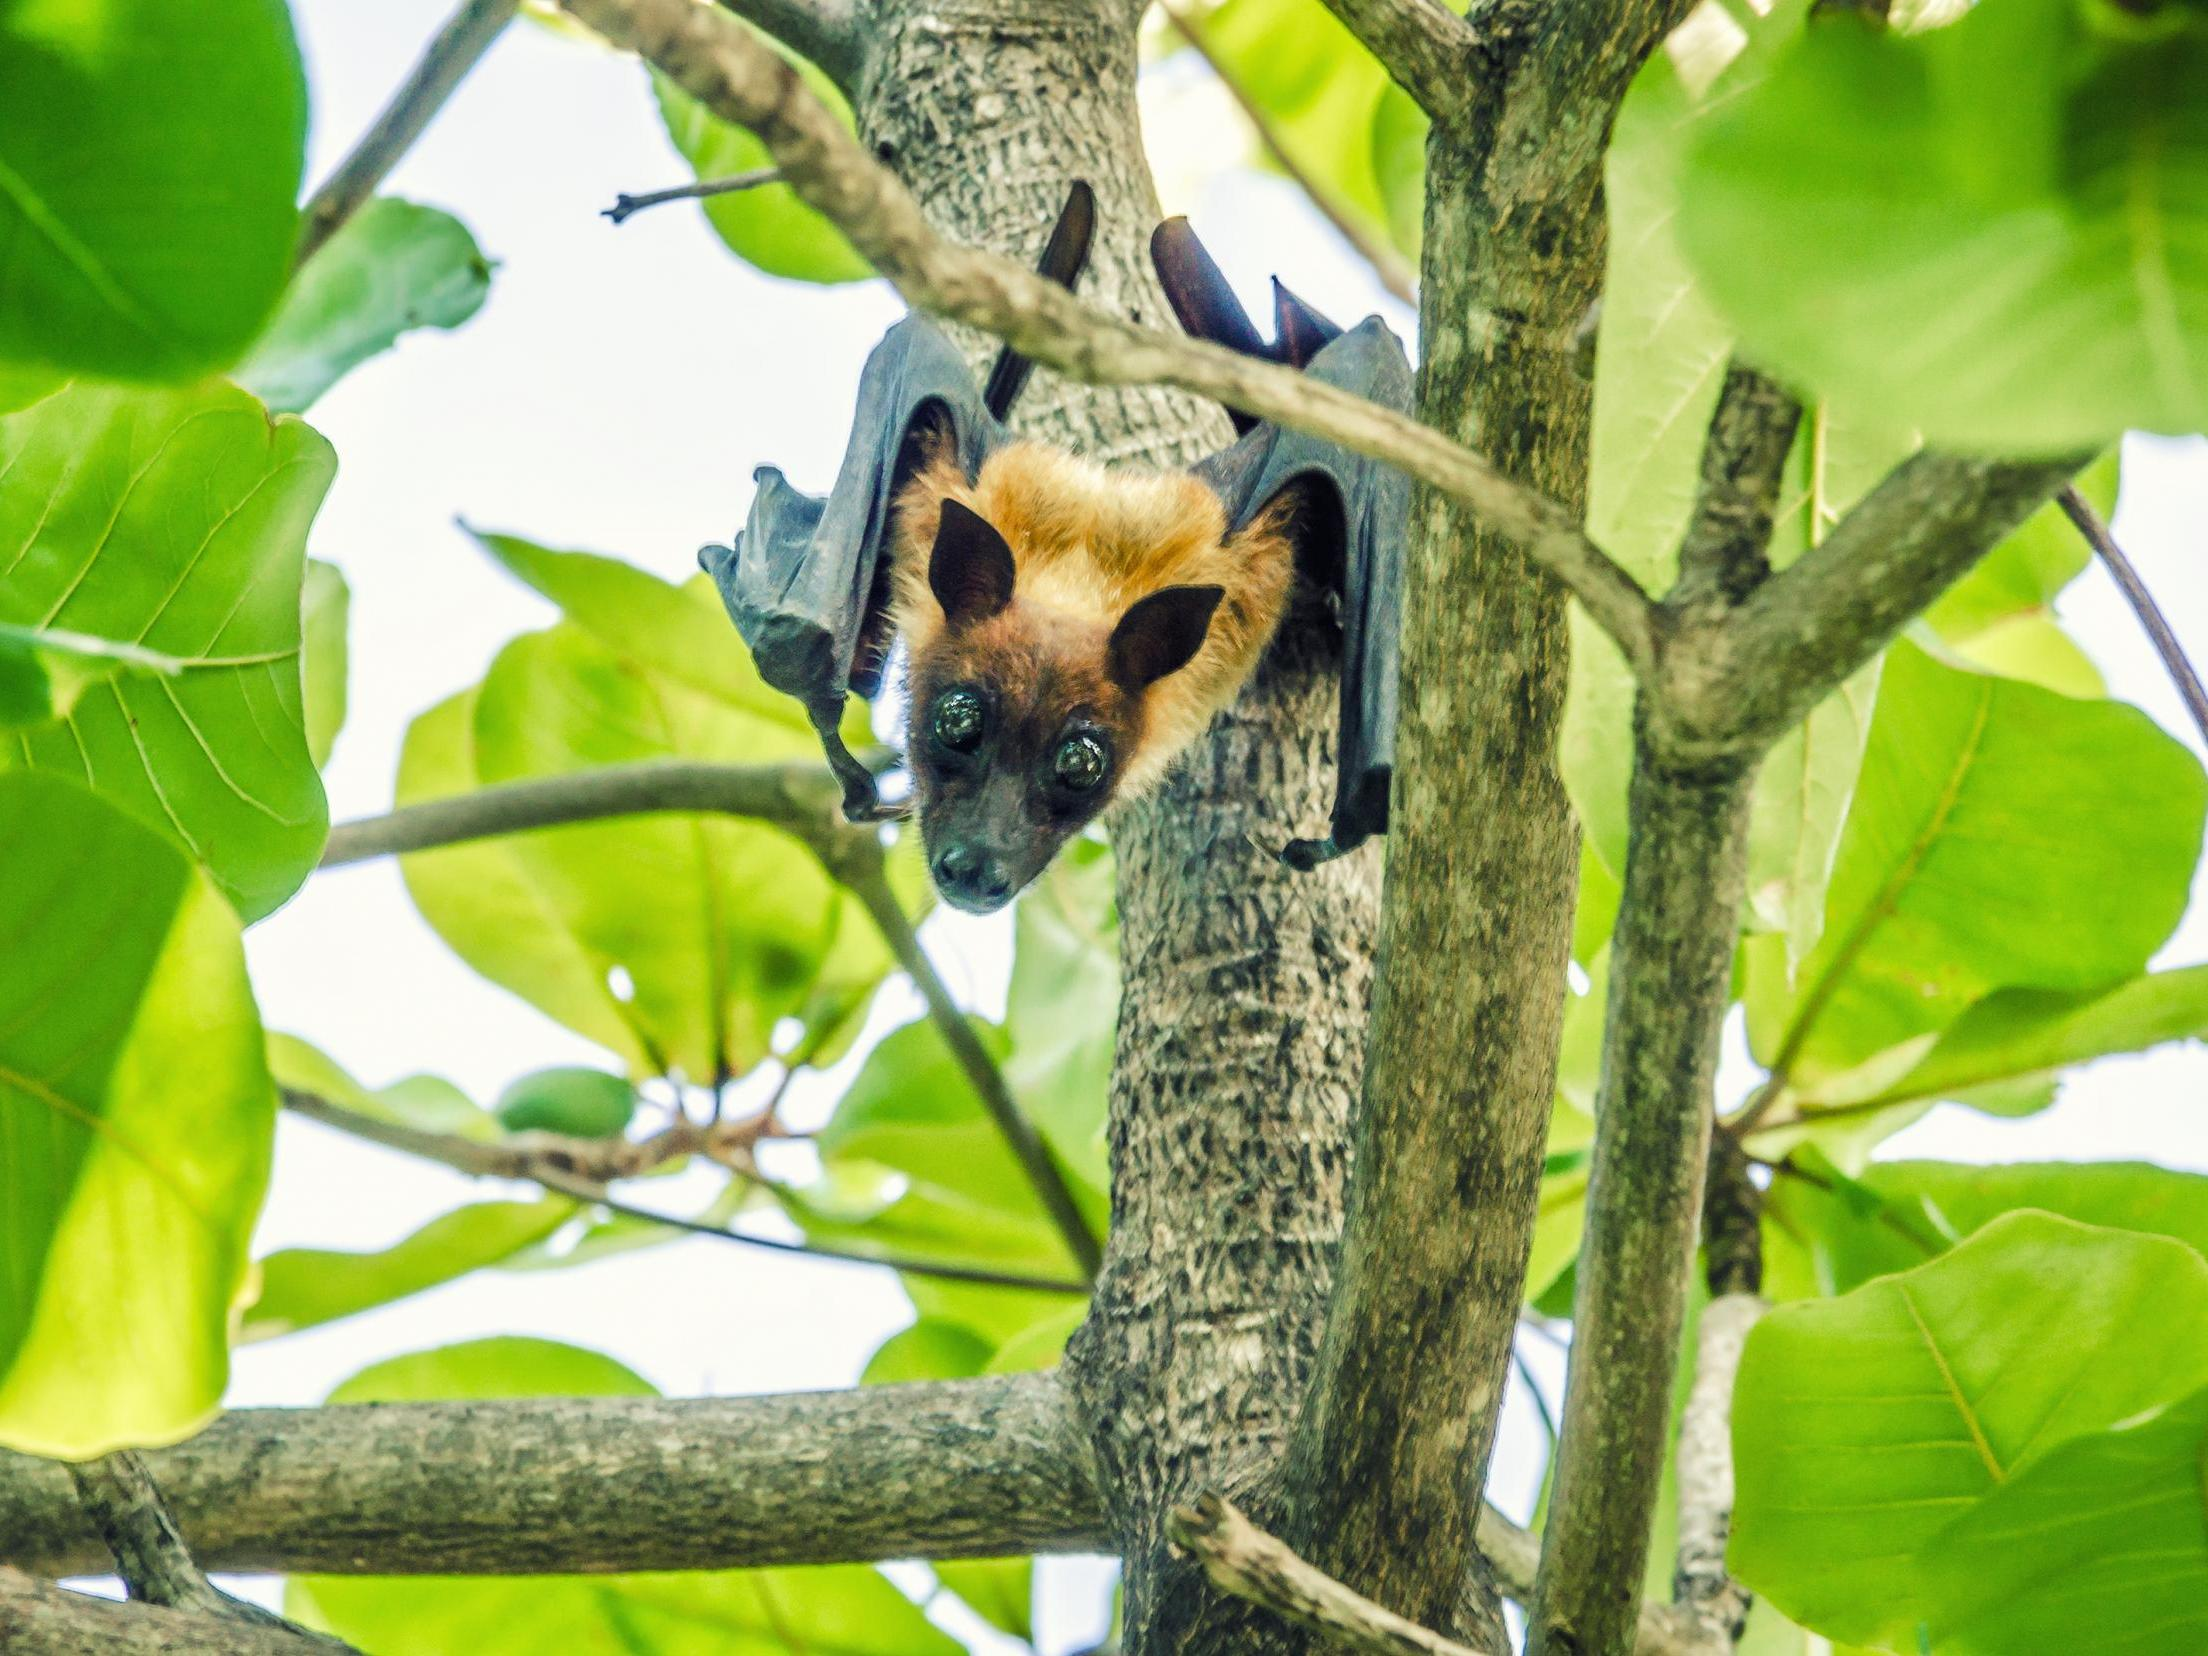 Endangered fruit bats 'being driven to extinction' in Mauritius after mass culls kill 50,000